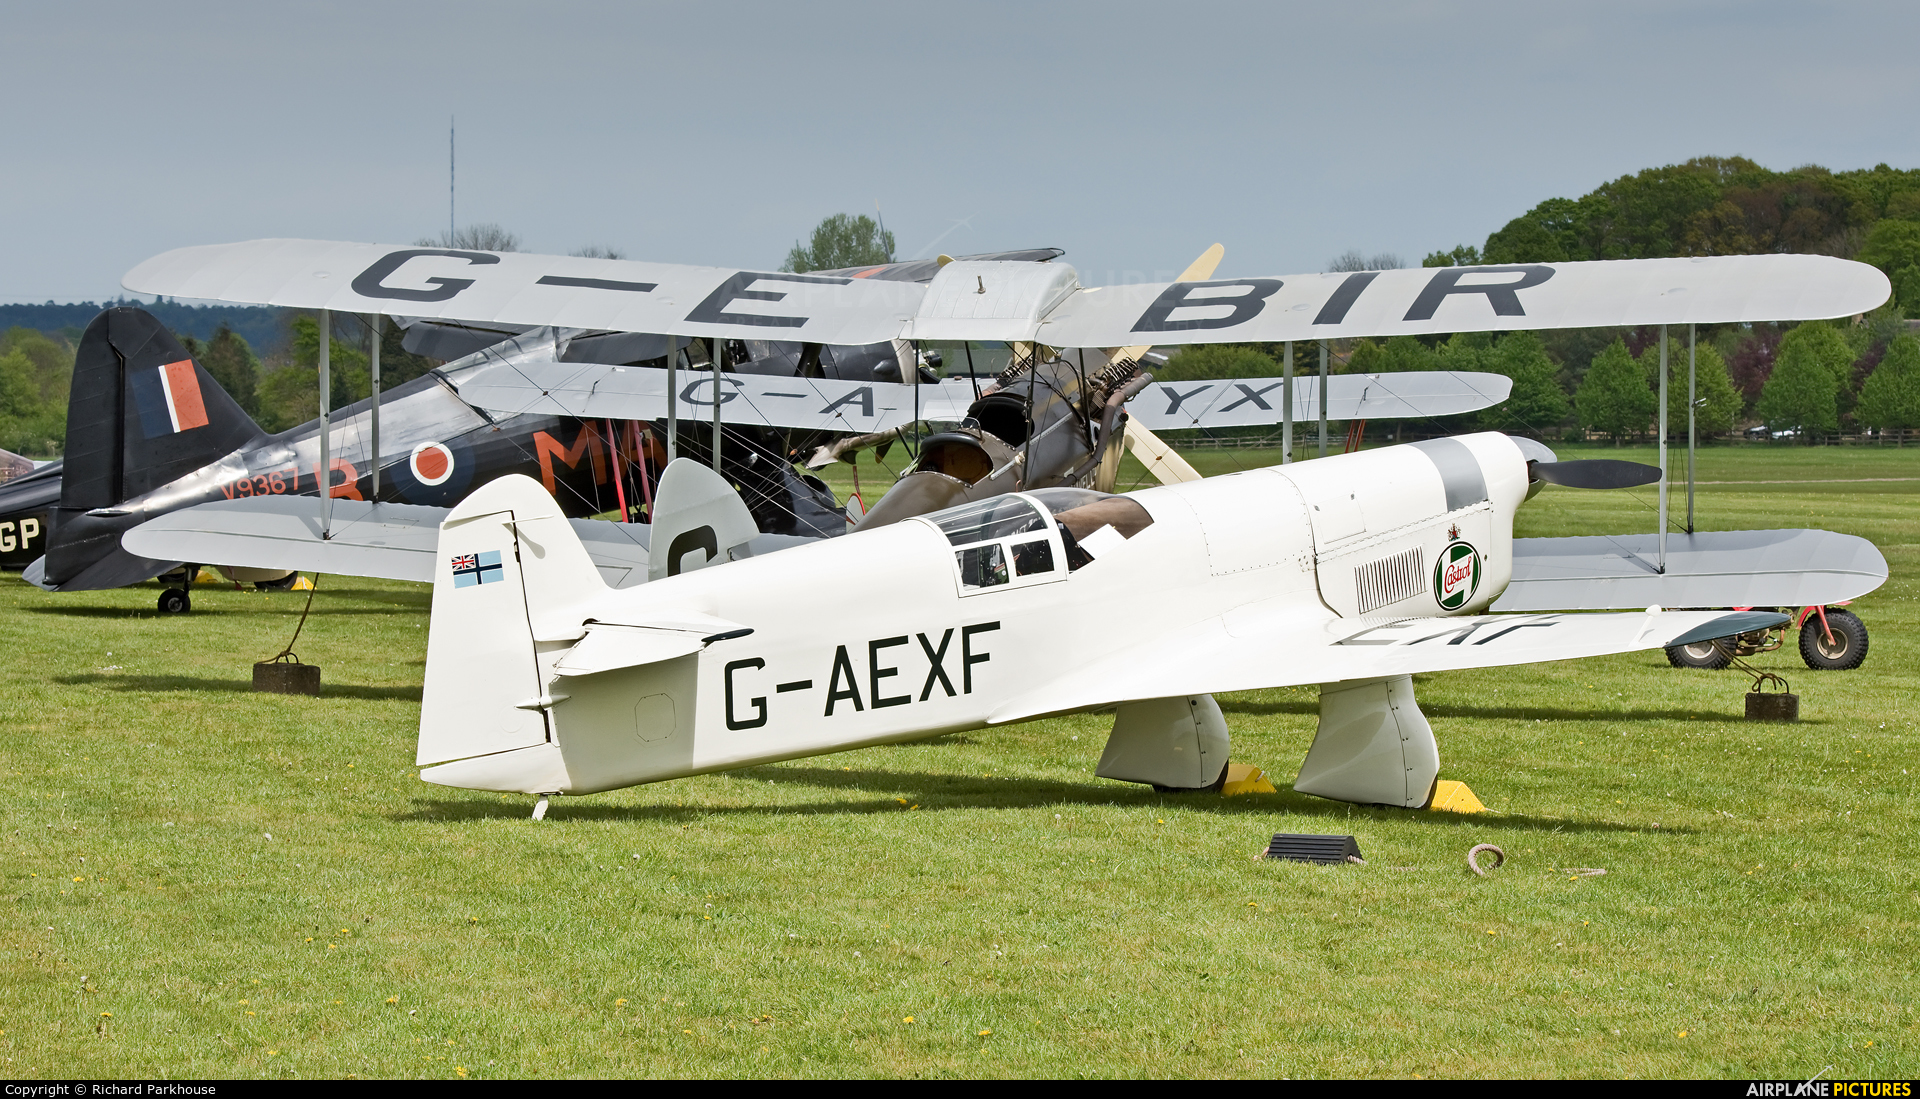 The Shuttleworth Collection G-AEXF aircraft at Old Warden